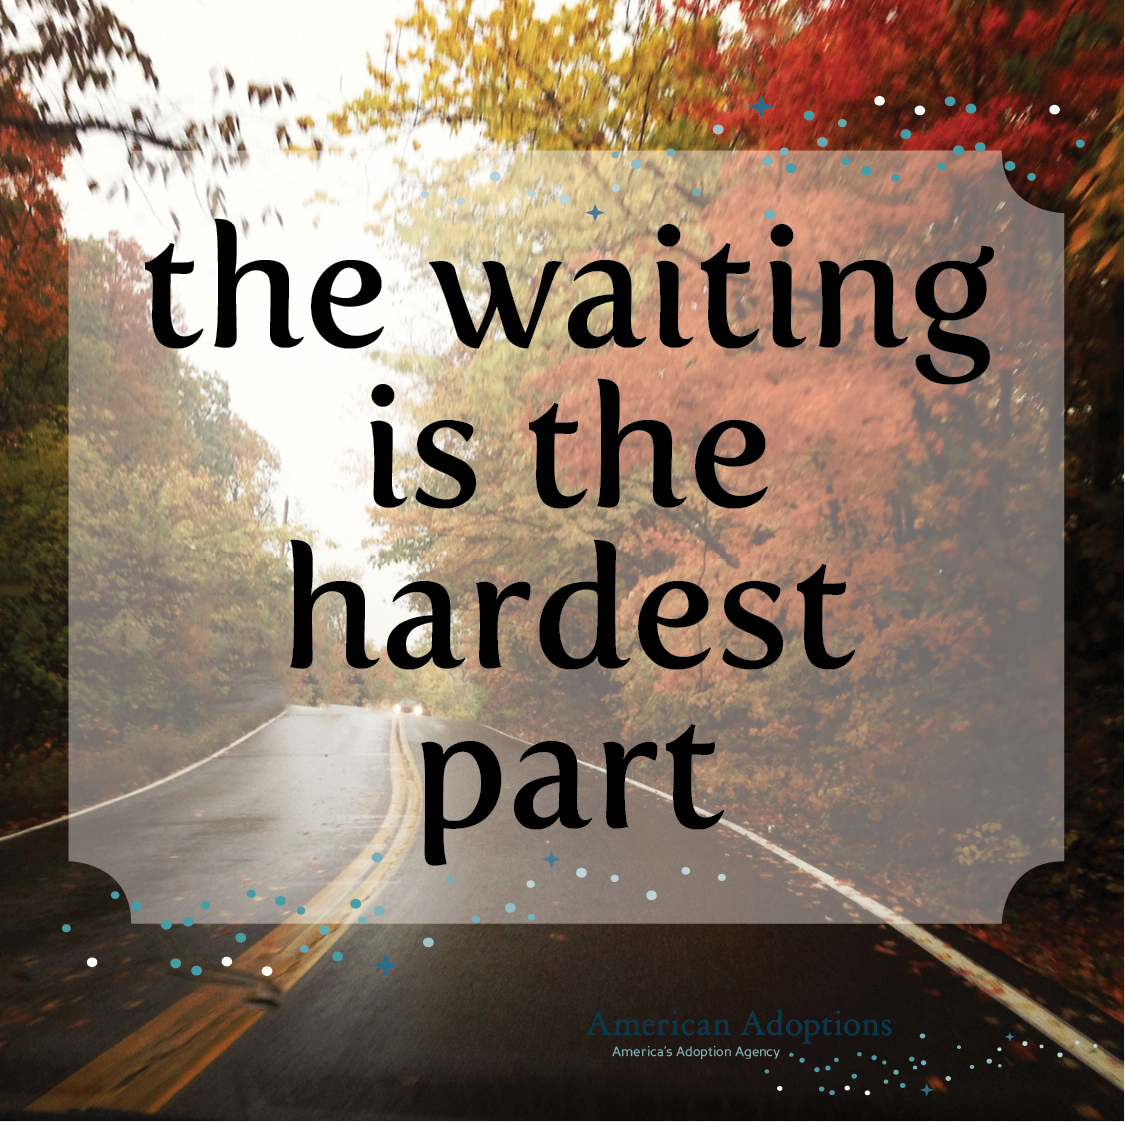 Best Part Of The Day Quotes: Waiting Is The Hardest Part Quotes. QuotesGram